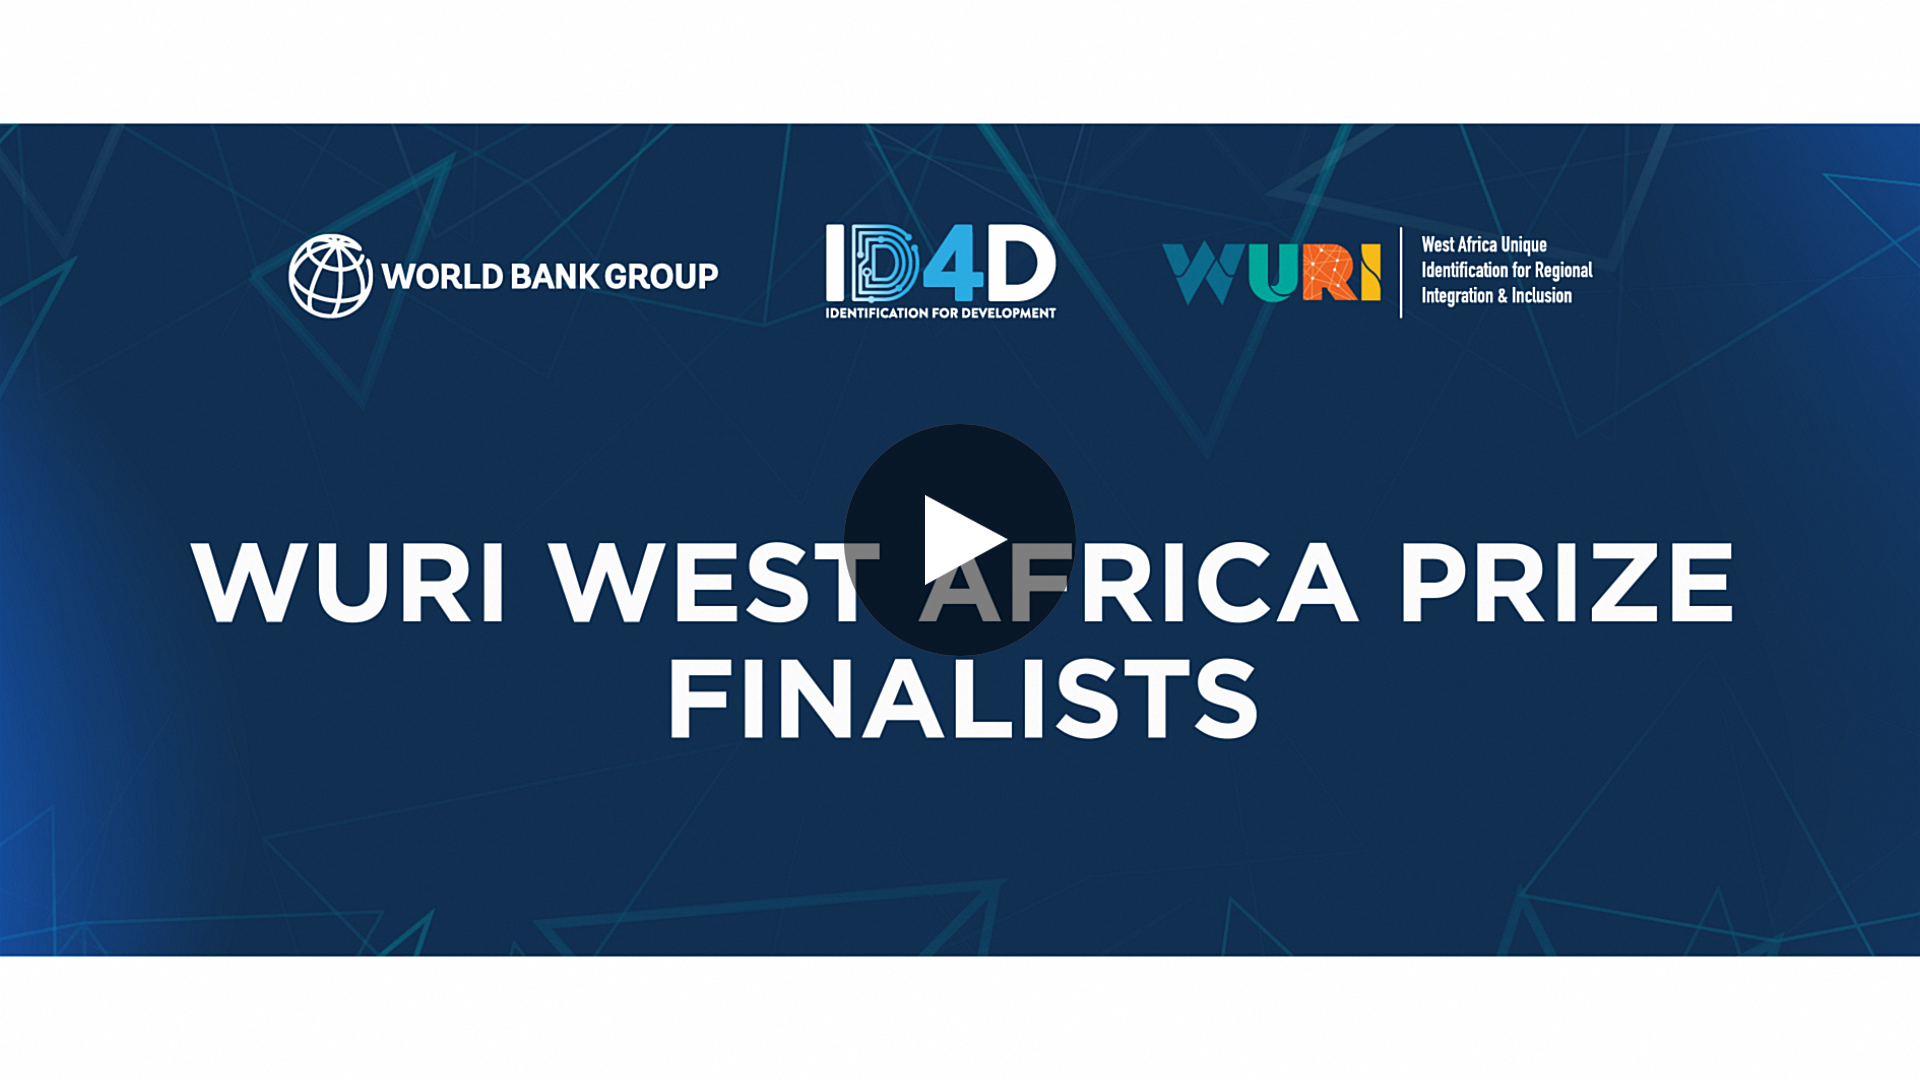 WURI West Africa Prize Highlights